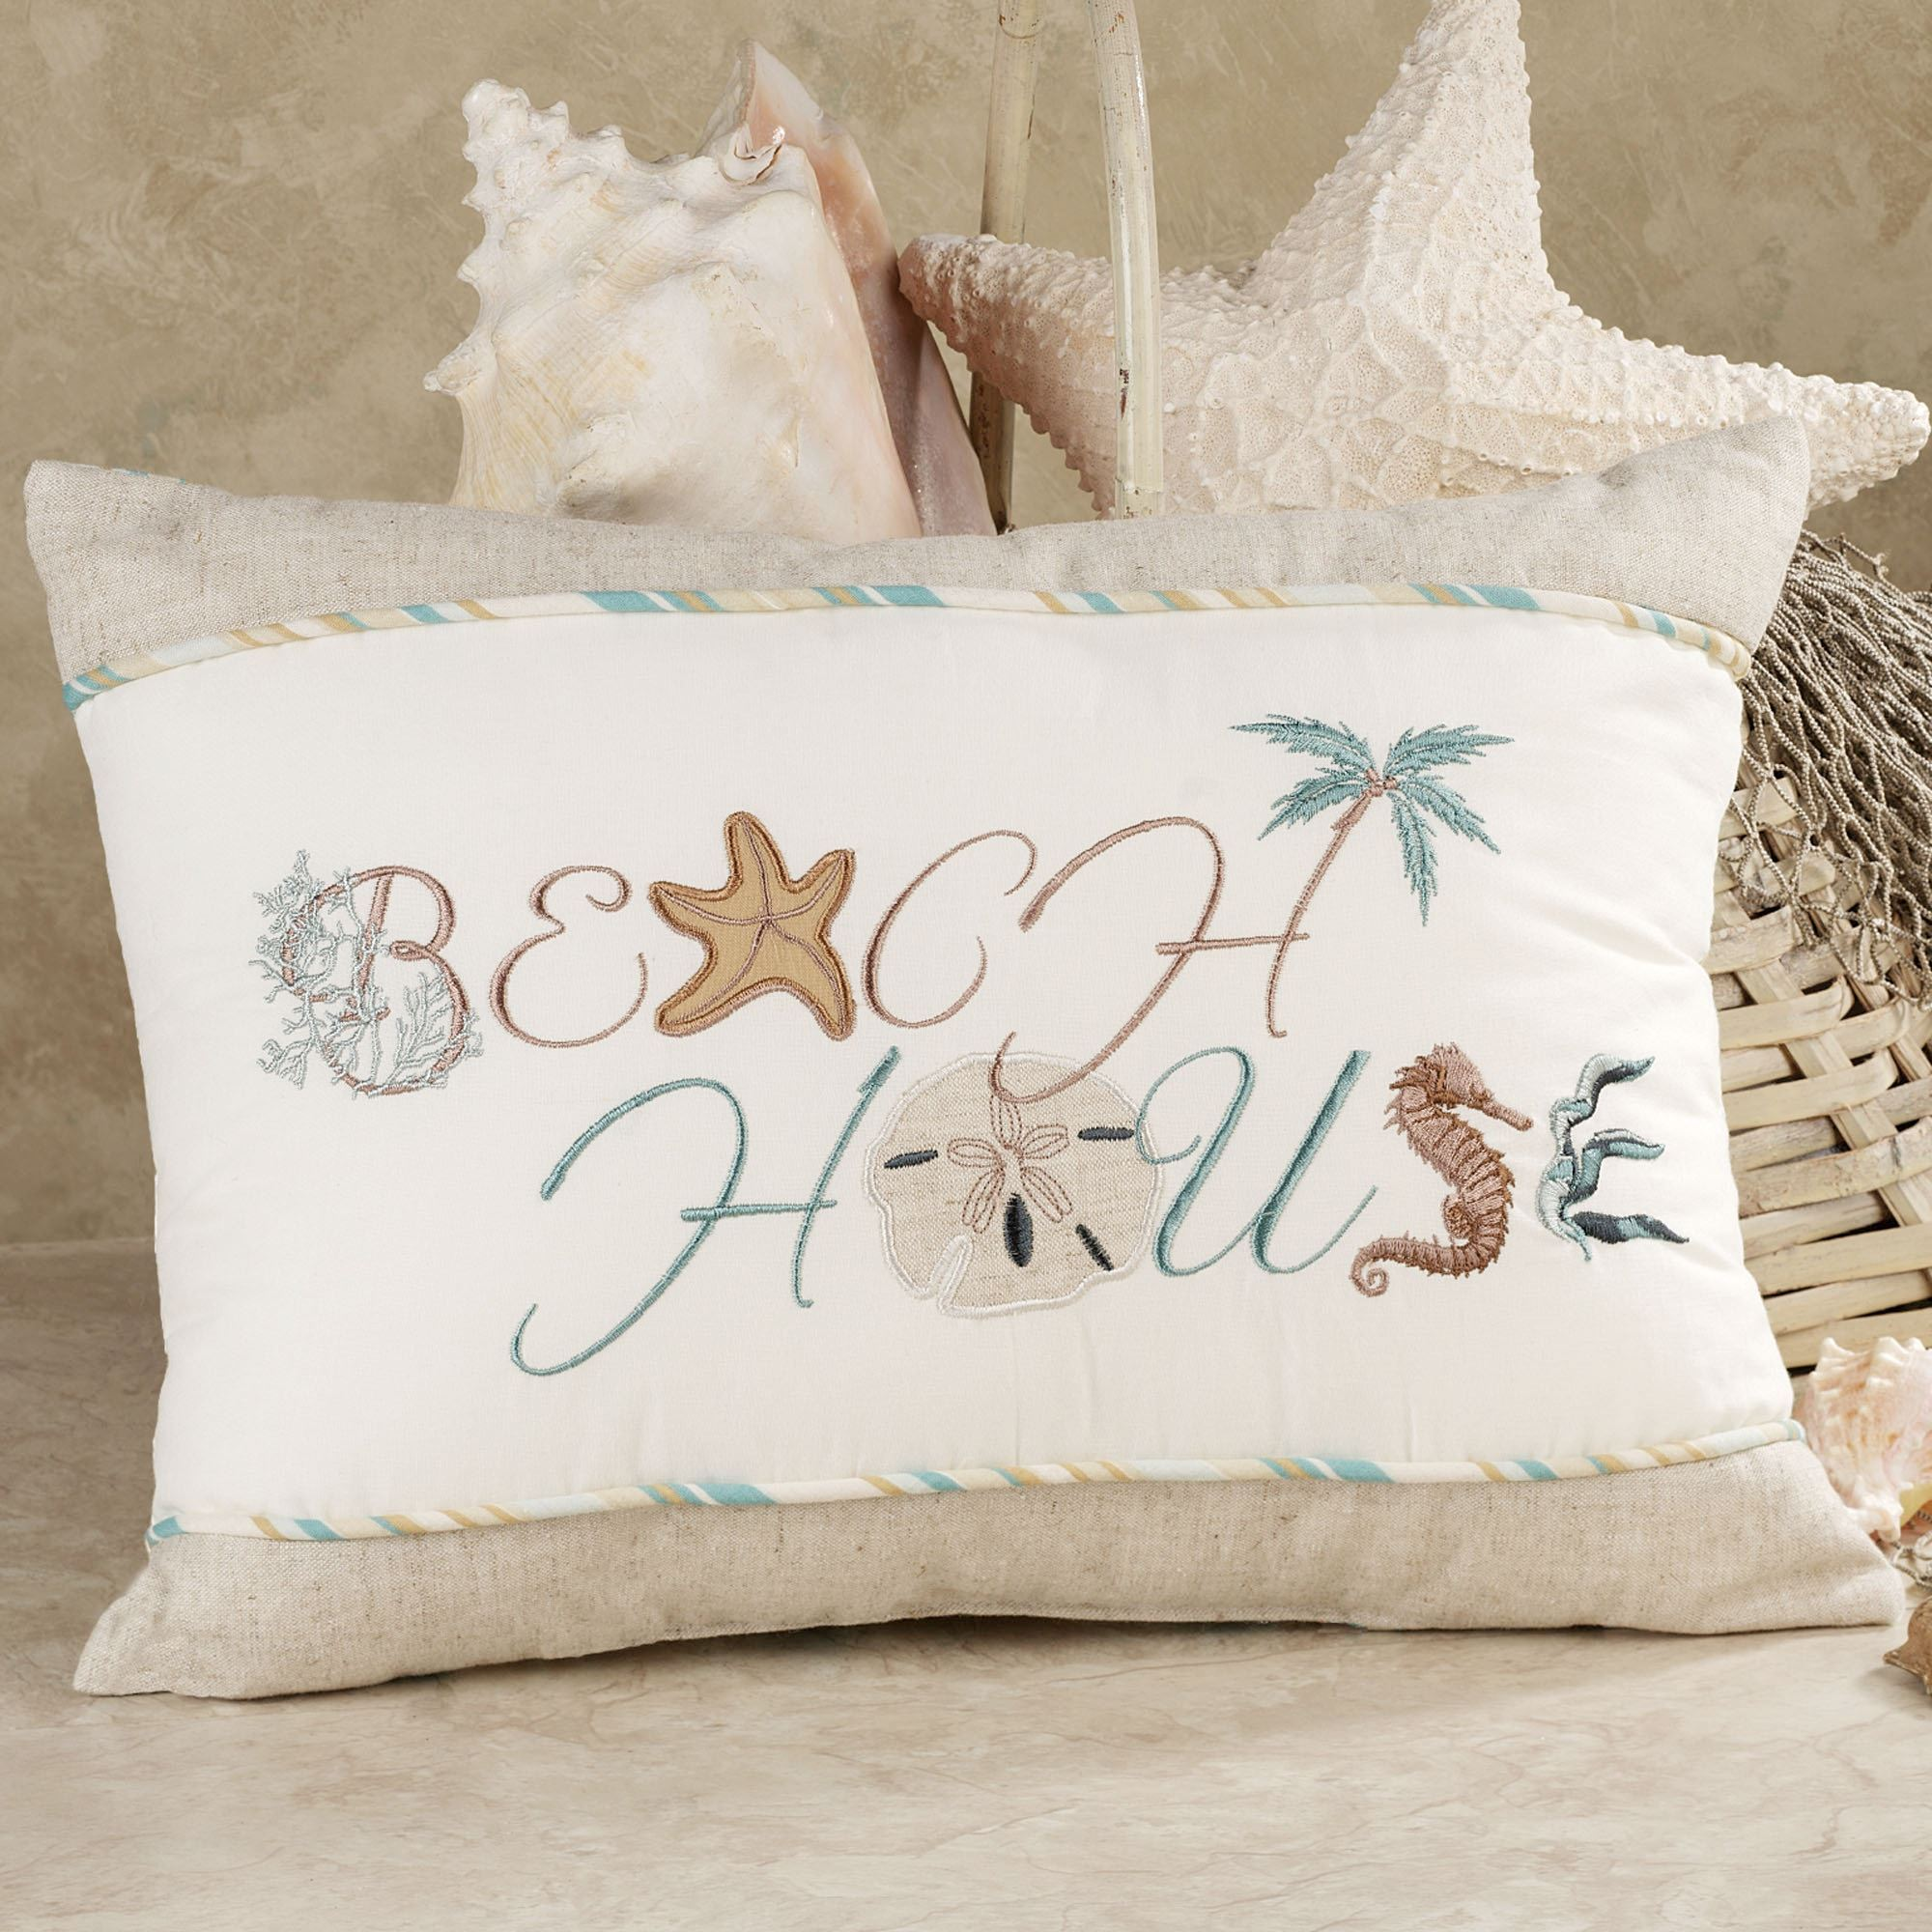 product pillows black kashmir accessorize seafolly beach pillow me